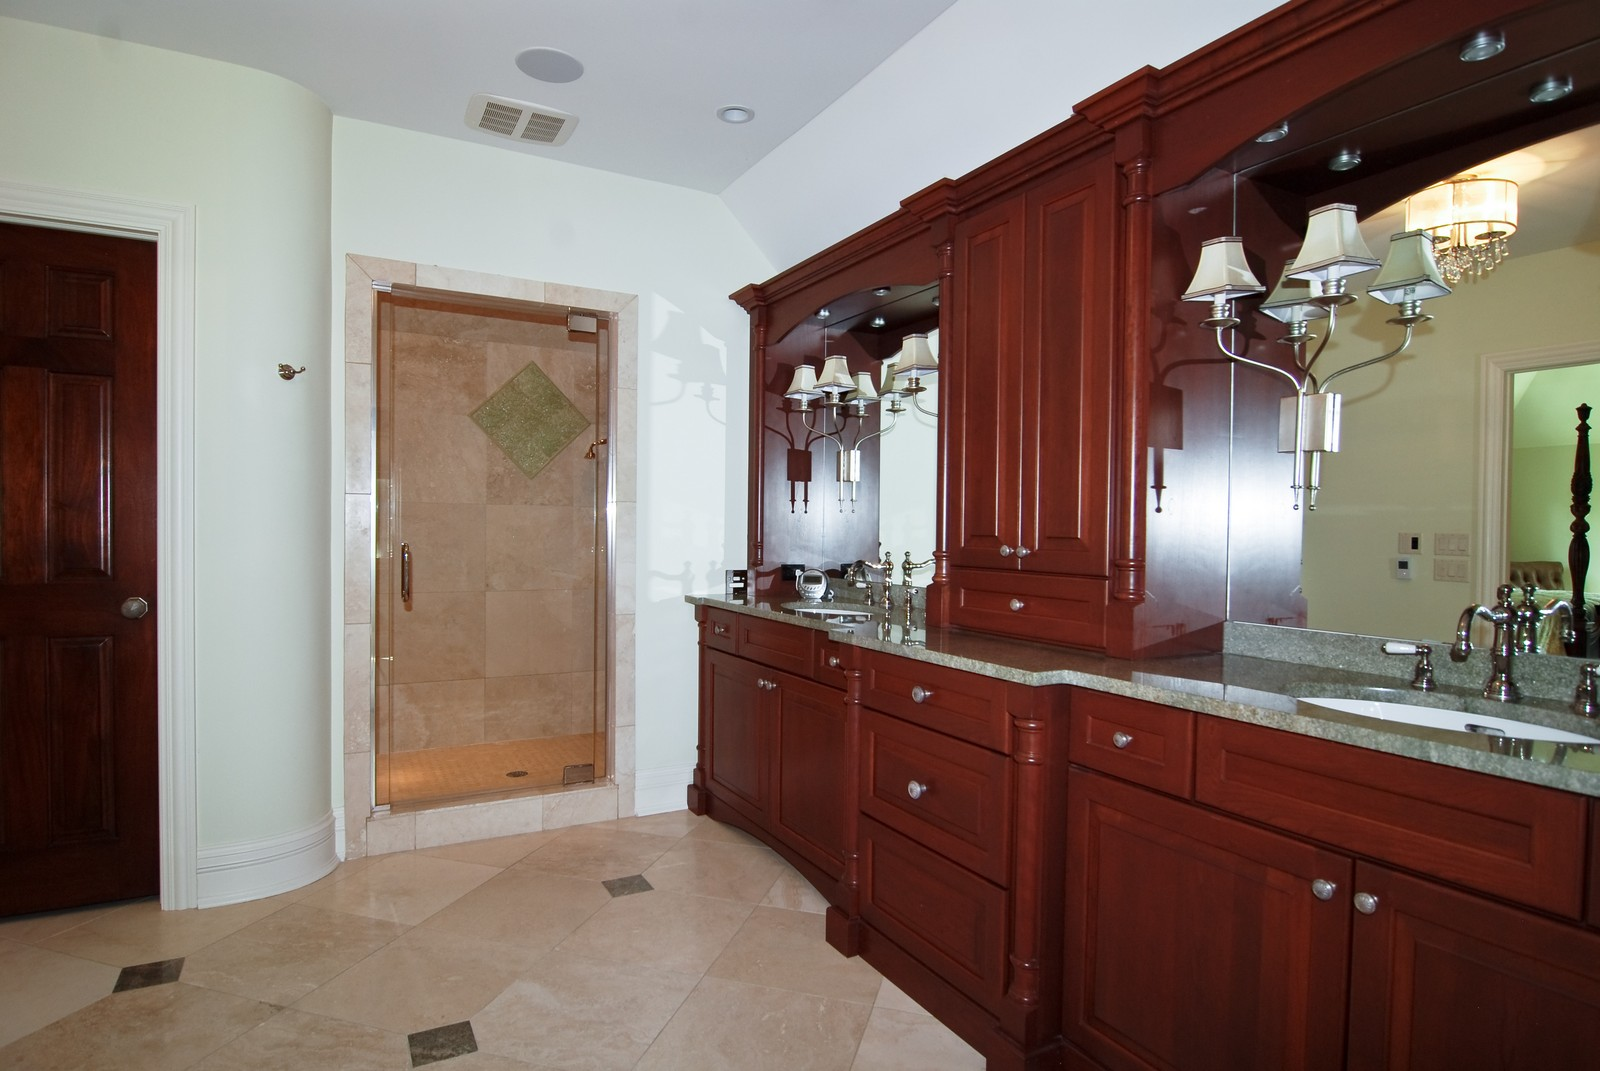 Real Estate Photography - 1105 Park Ave, River Forest, IL, 60305 - Master Bathroom